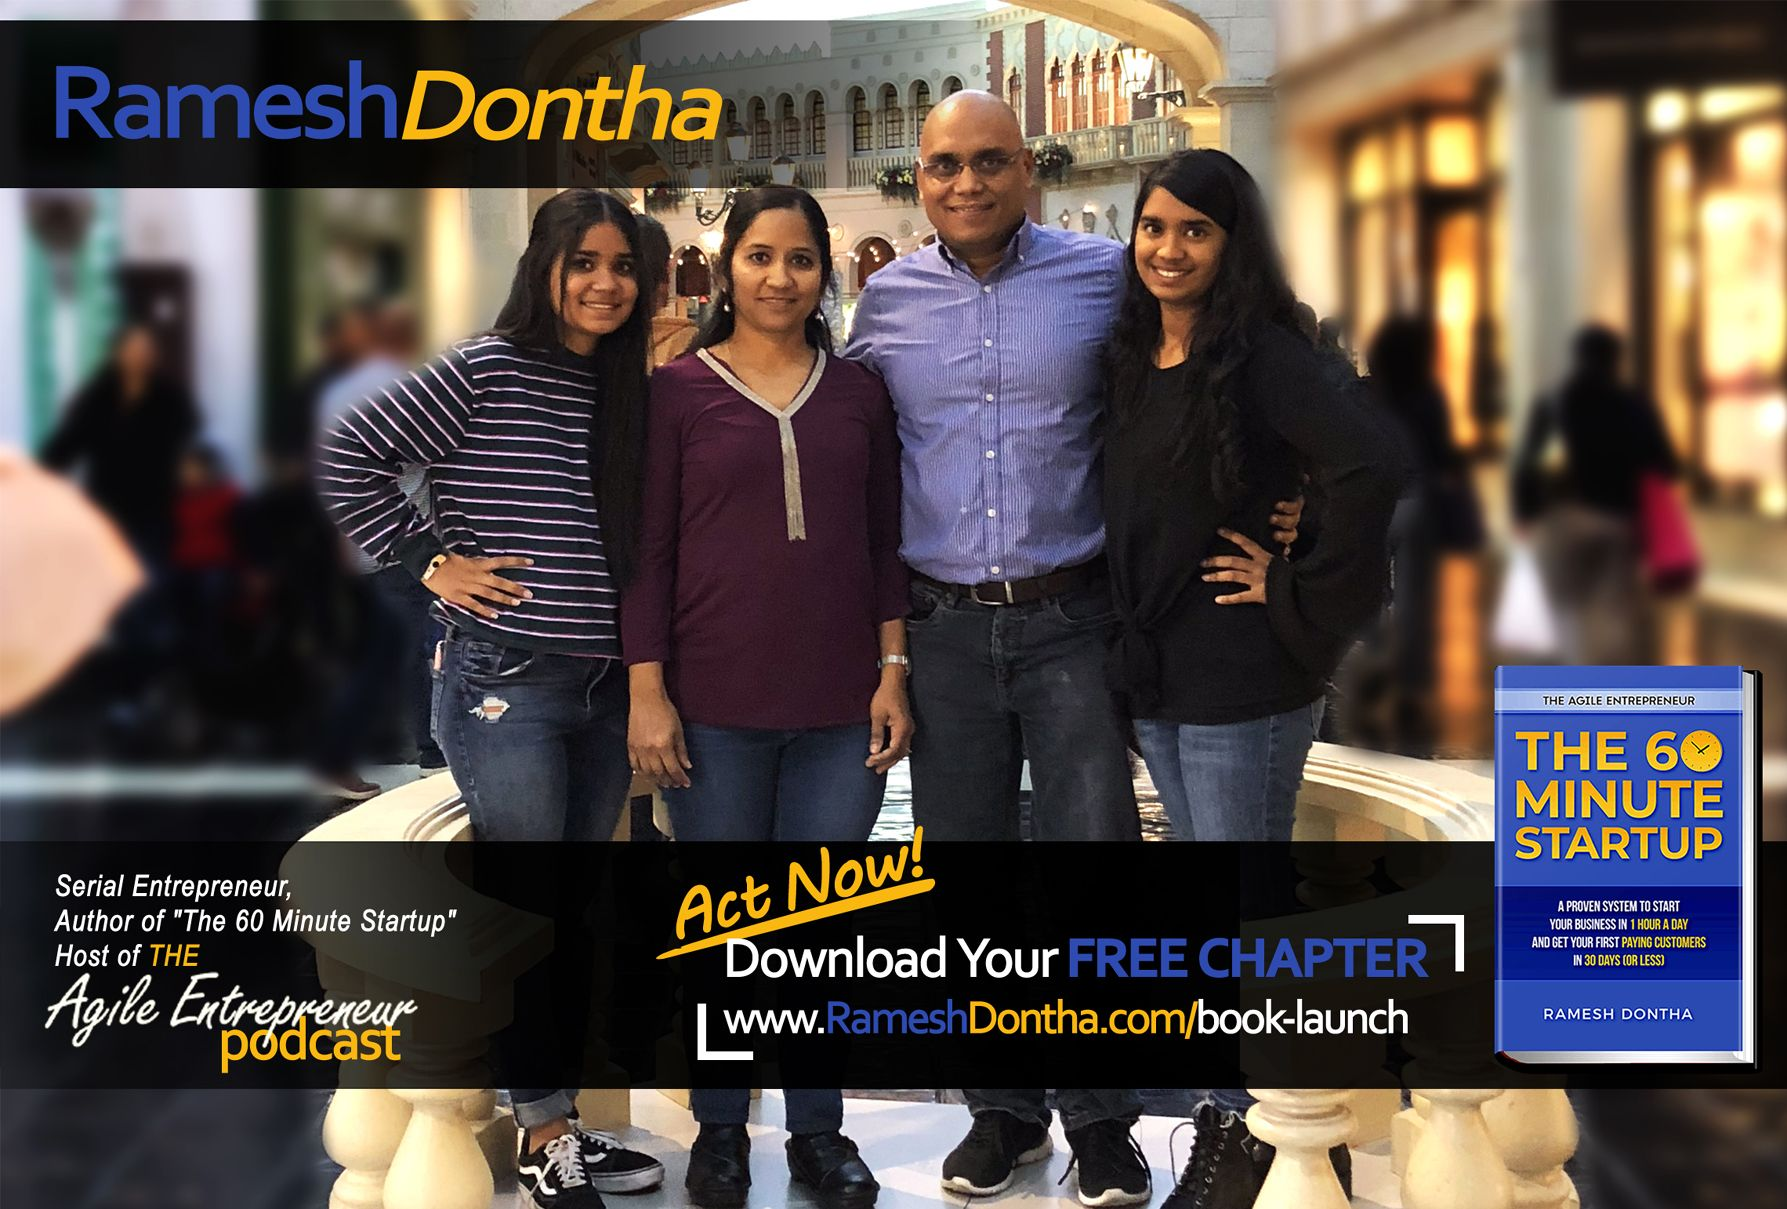 Megha and Ramesh Dontha -The 60 Minute Startup